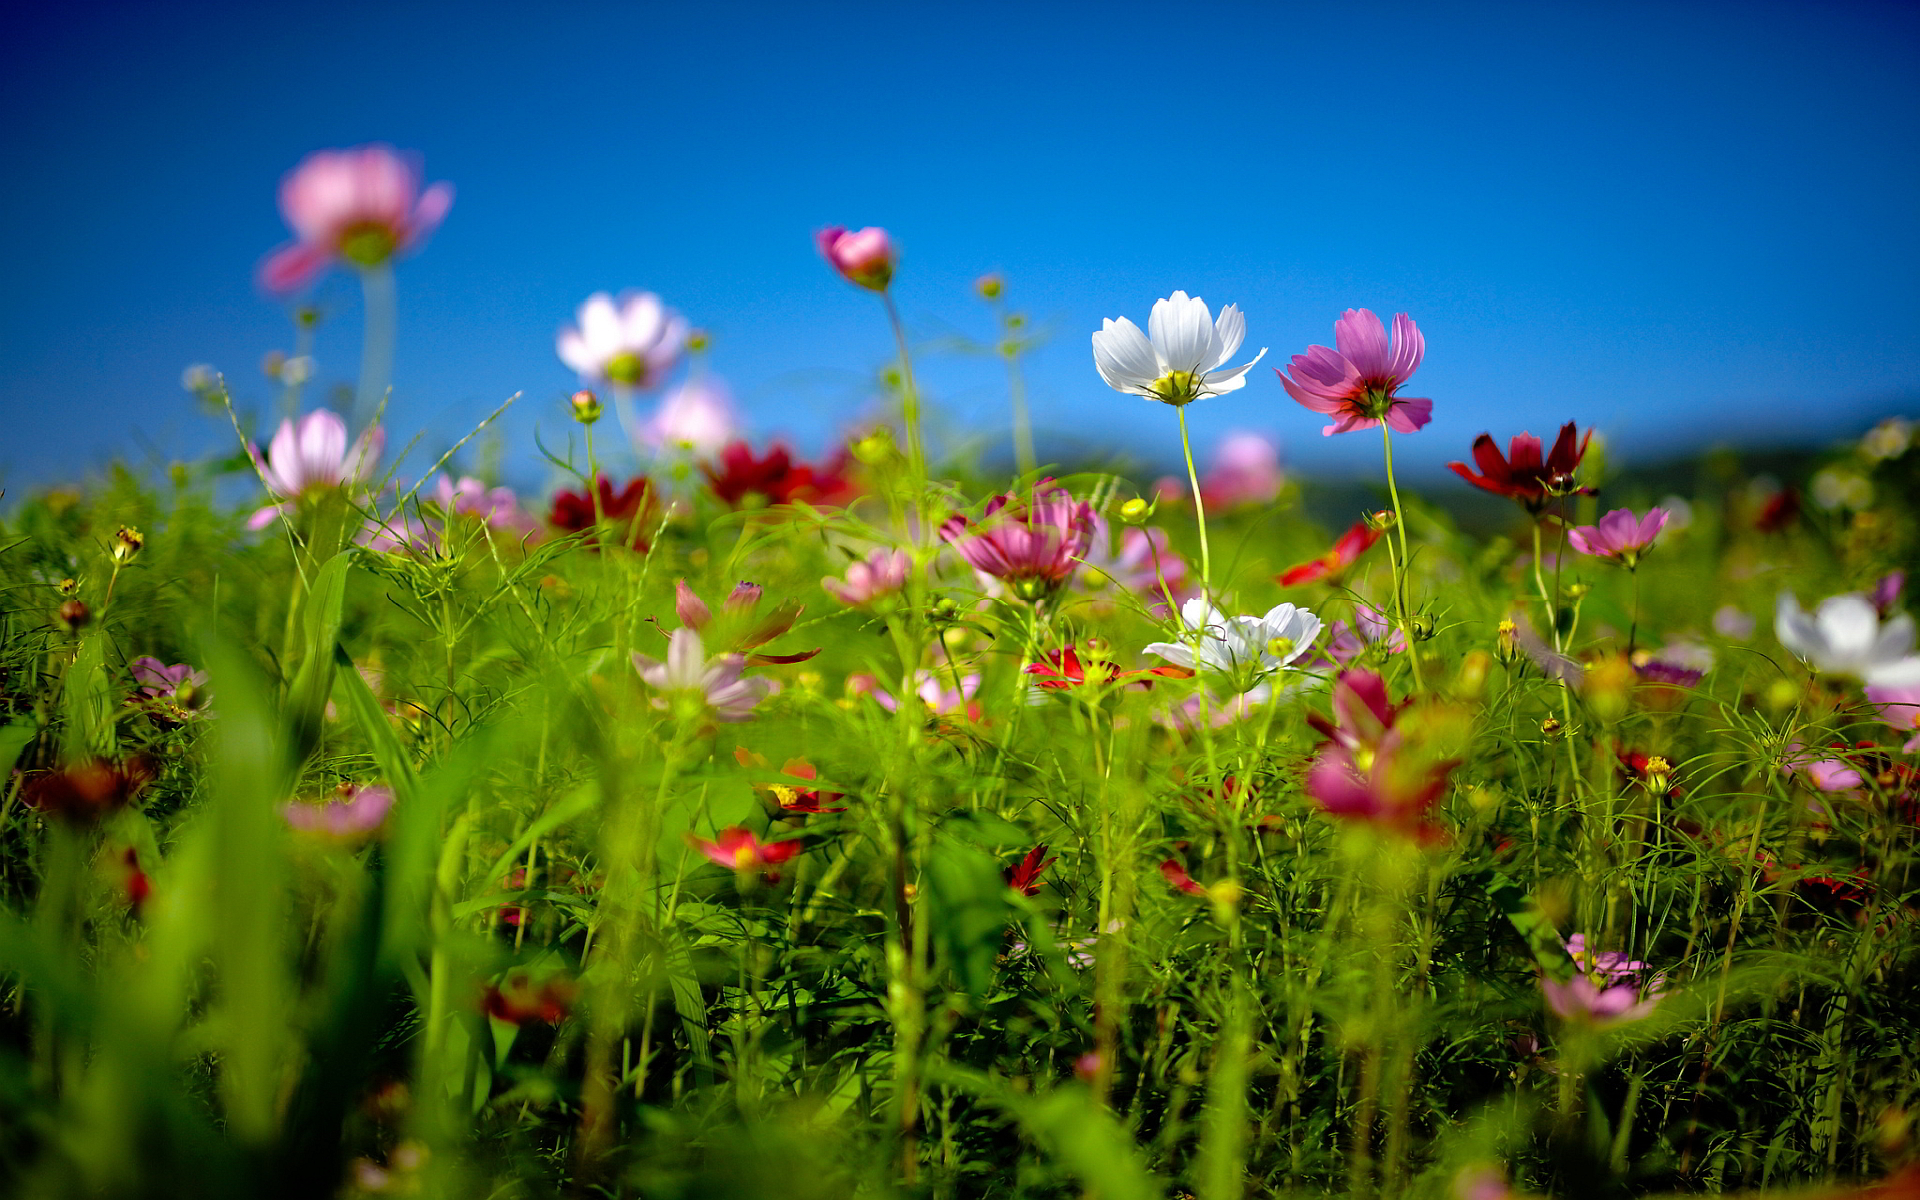 Summer Flowers Wallpapers Download at